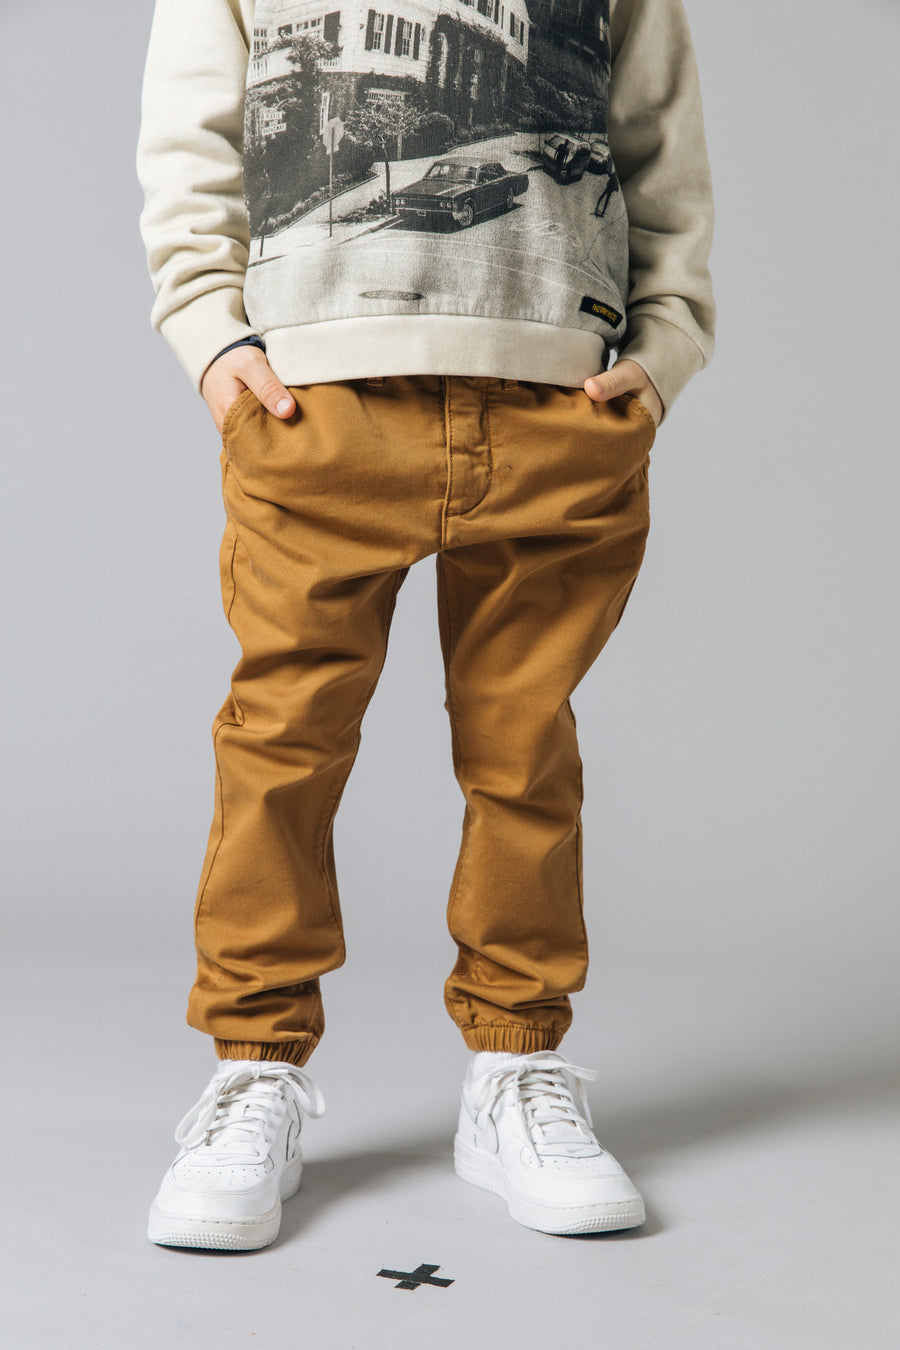 SCOTTY Caramel -  Woven Chino Fit Pants